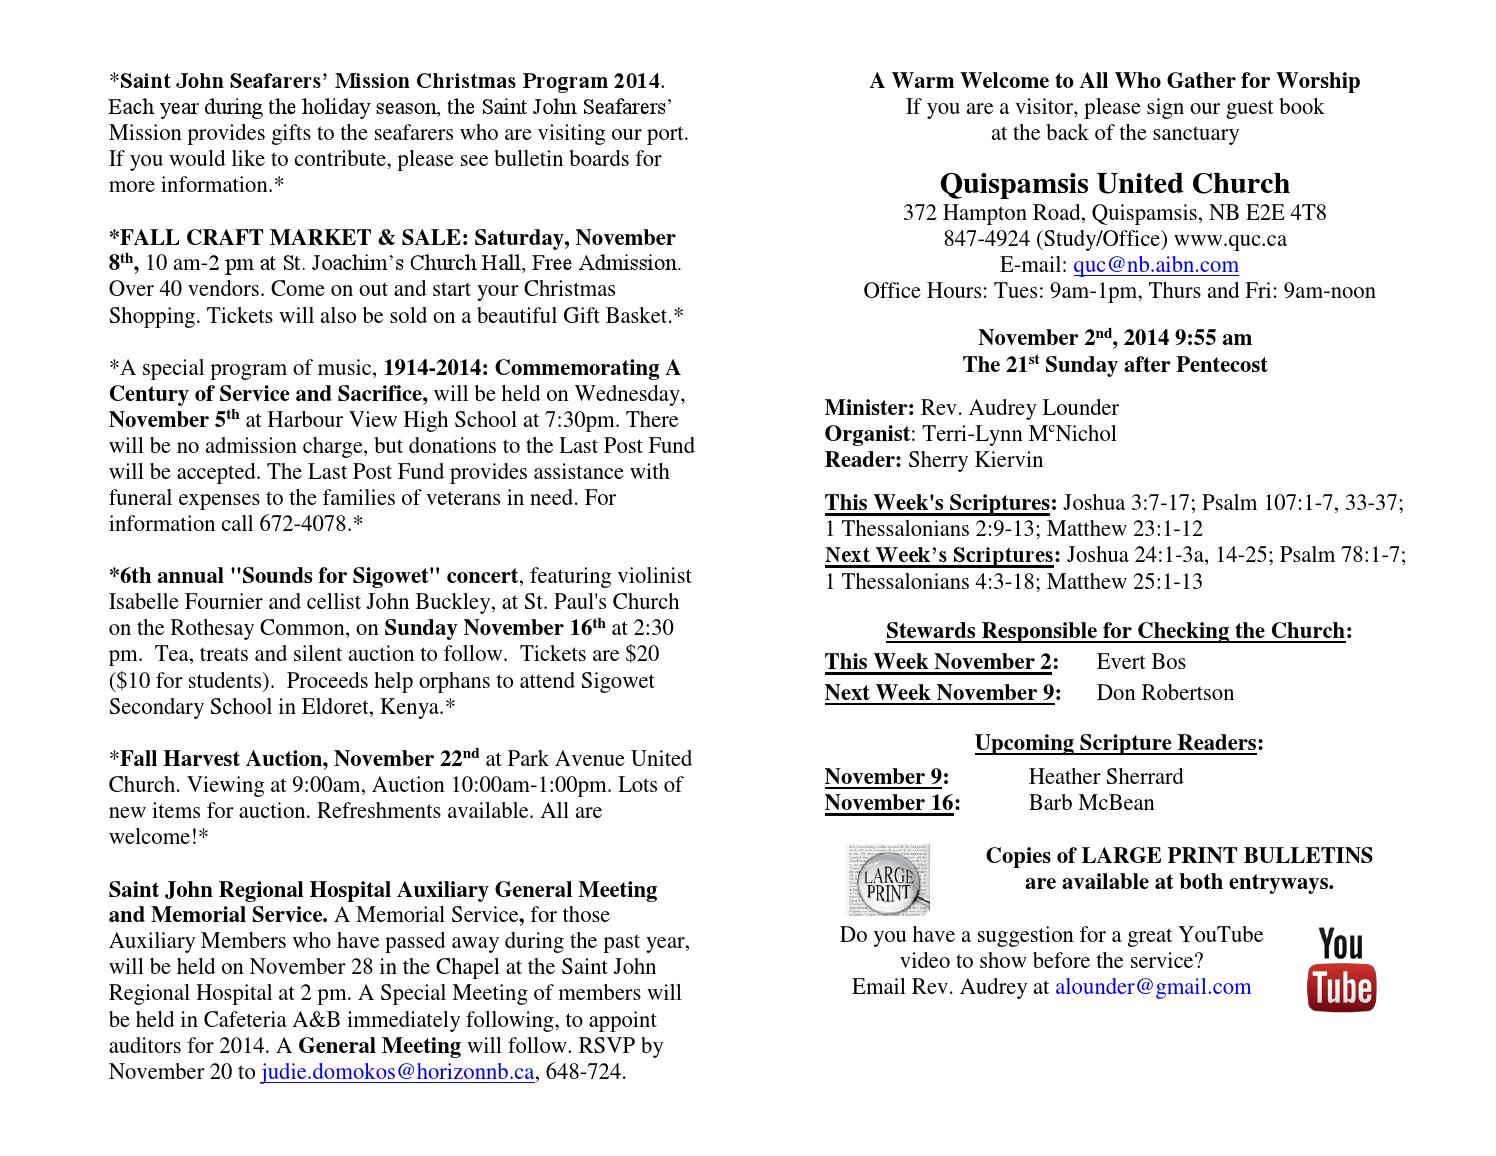 Free Talk Wednesday November 5th In >> November 2 Announcements By Quispamsis United Church Issuu